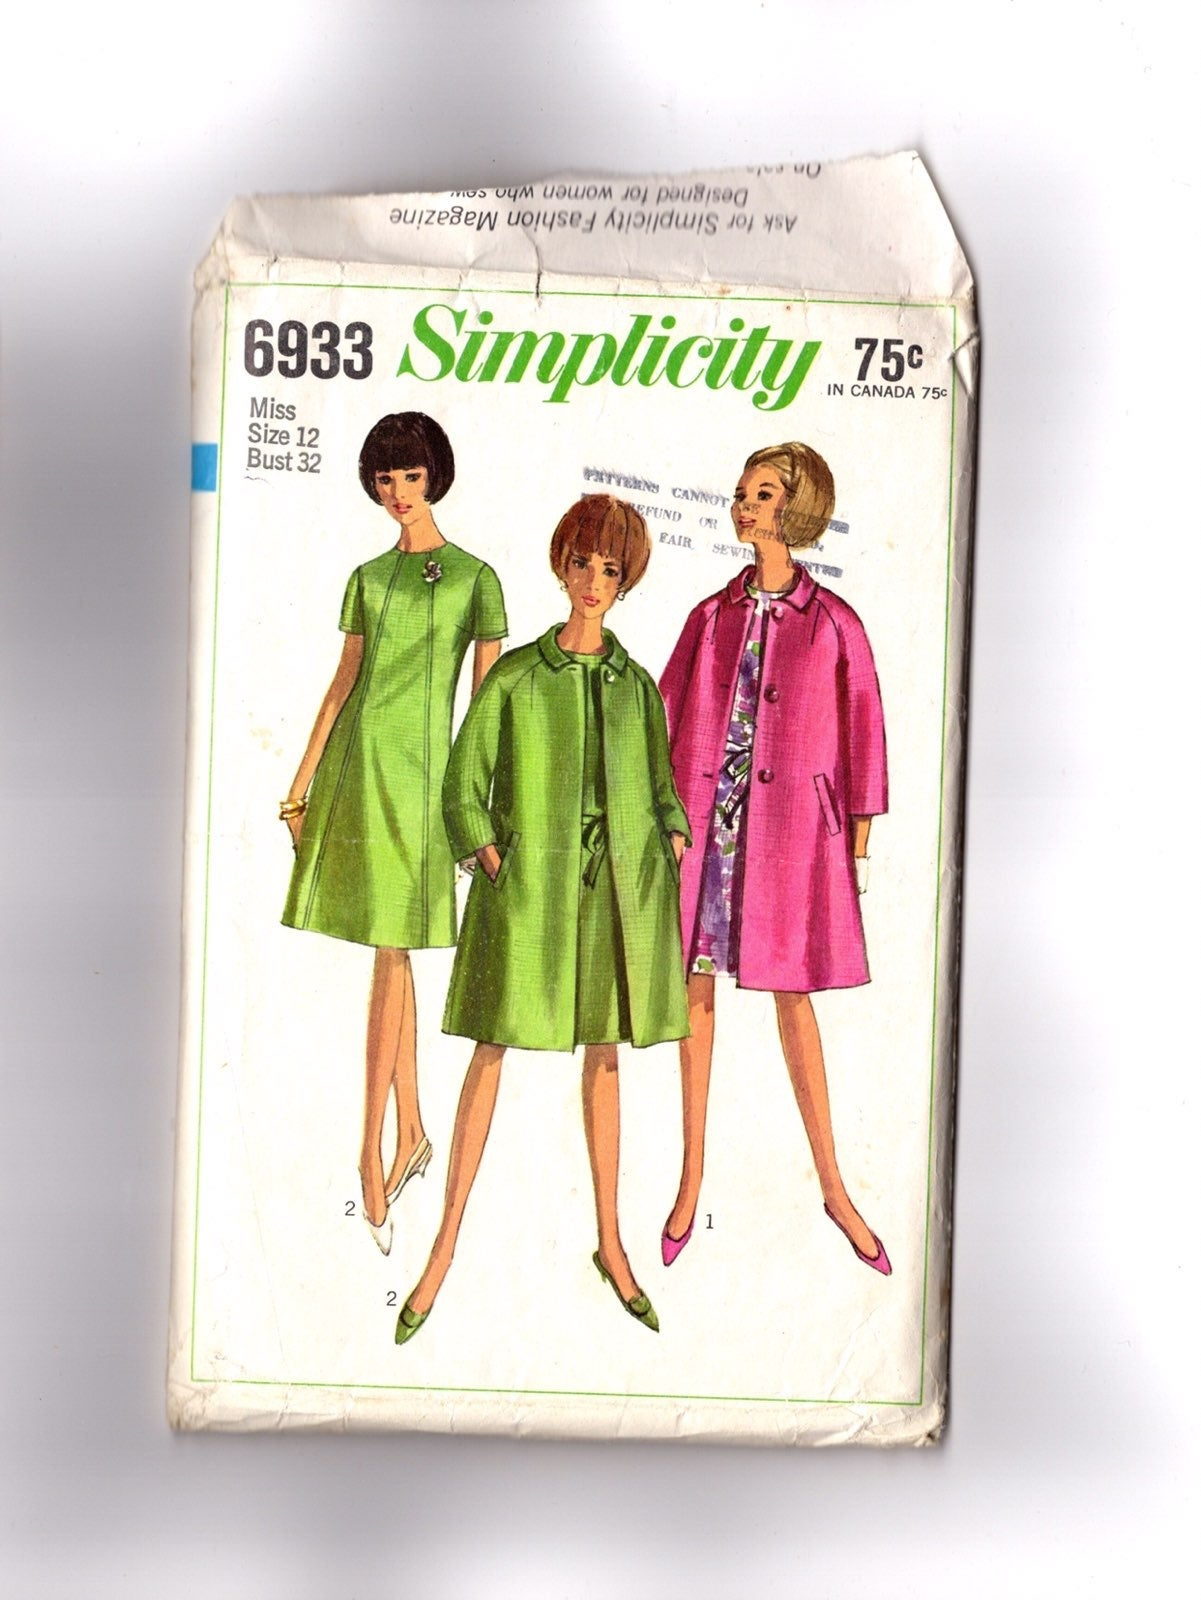 Vintage Pattern 1960s Dress & Coat